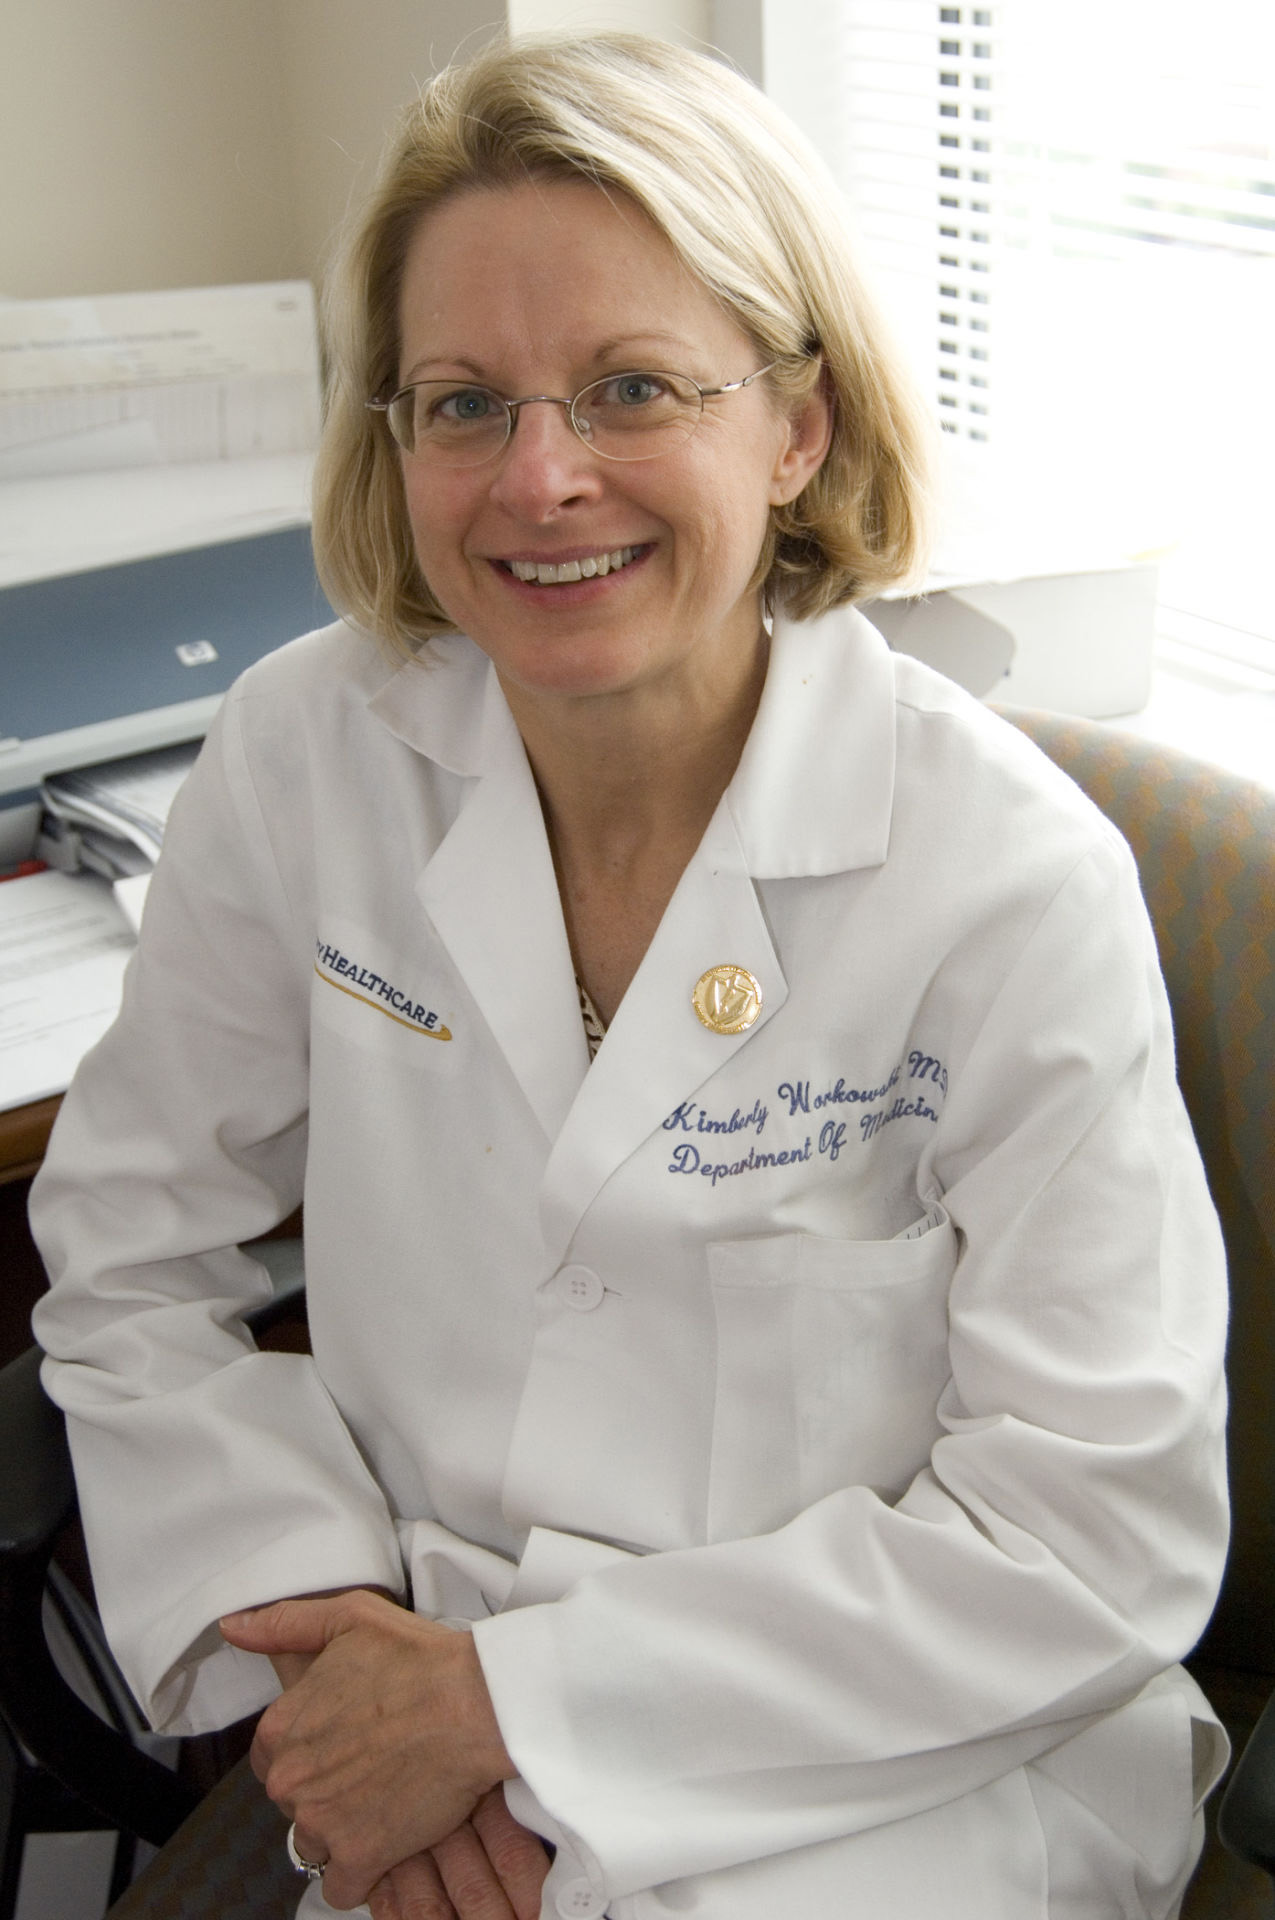 Kimberly Workowski, MD, FACP, FIDSA